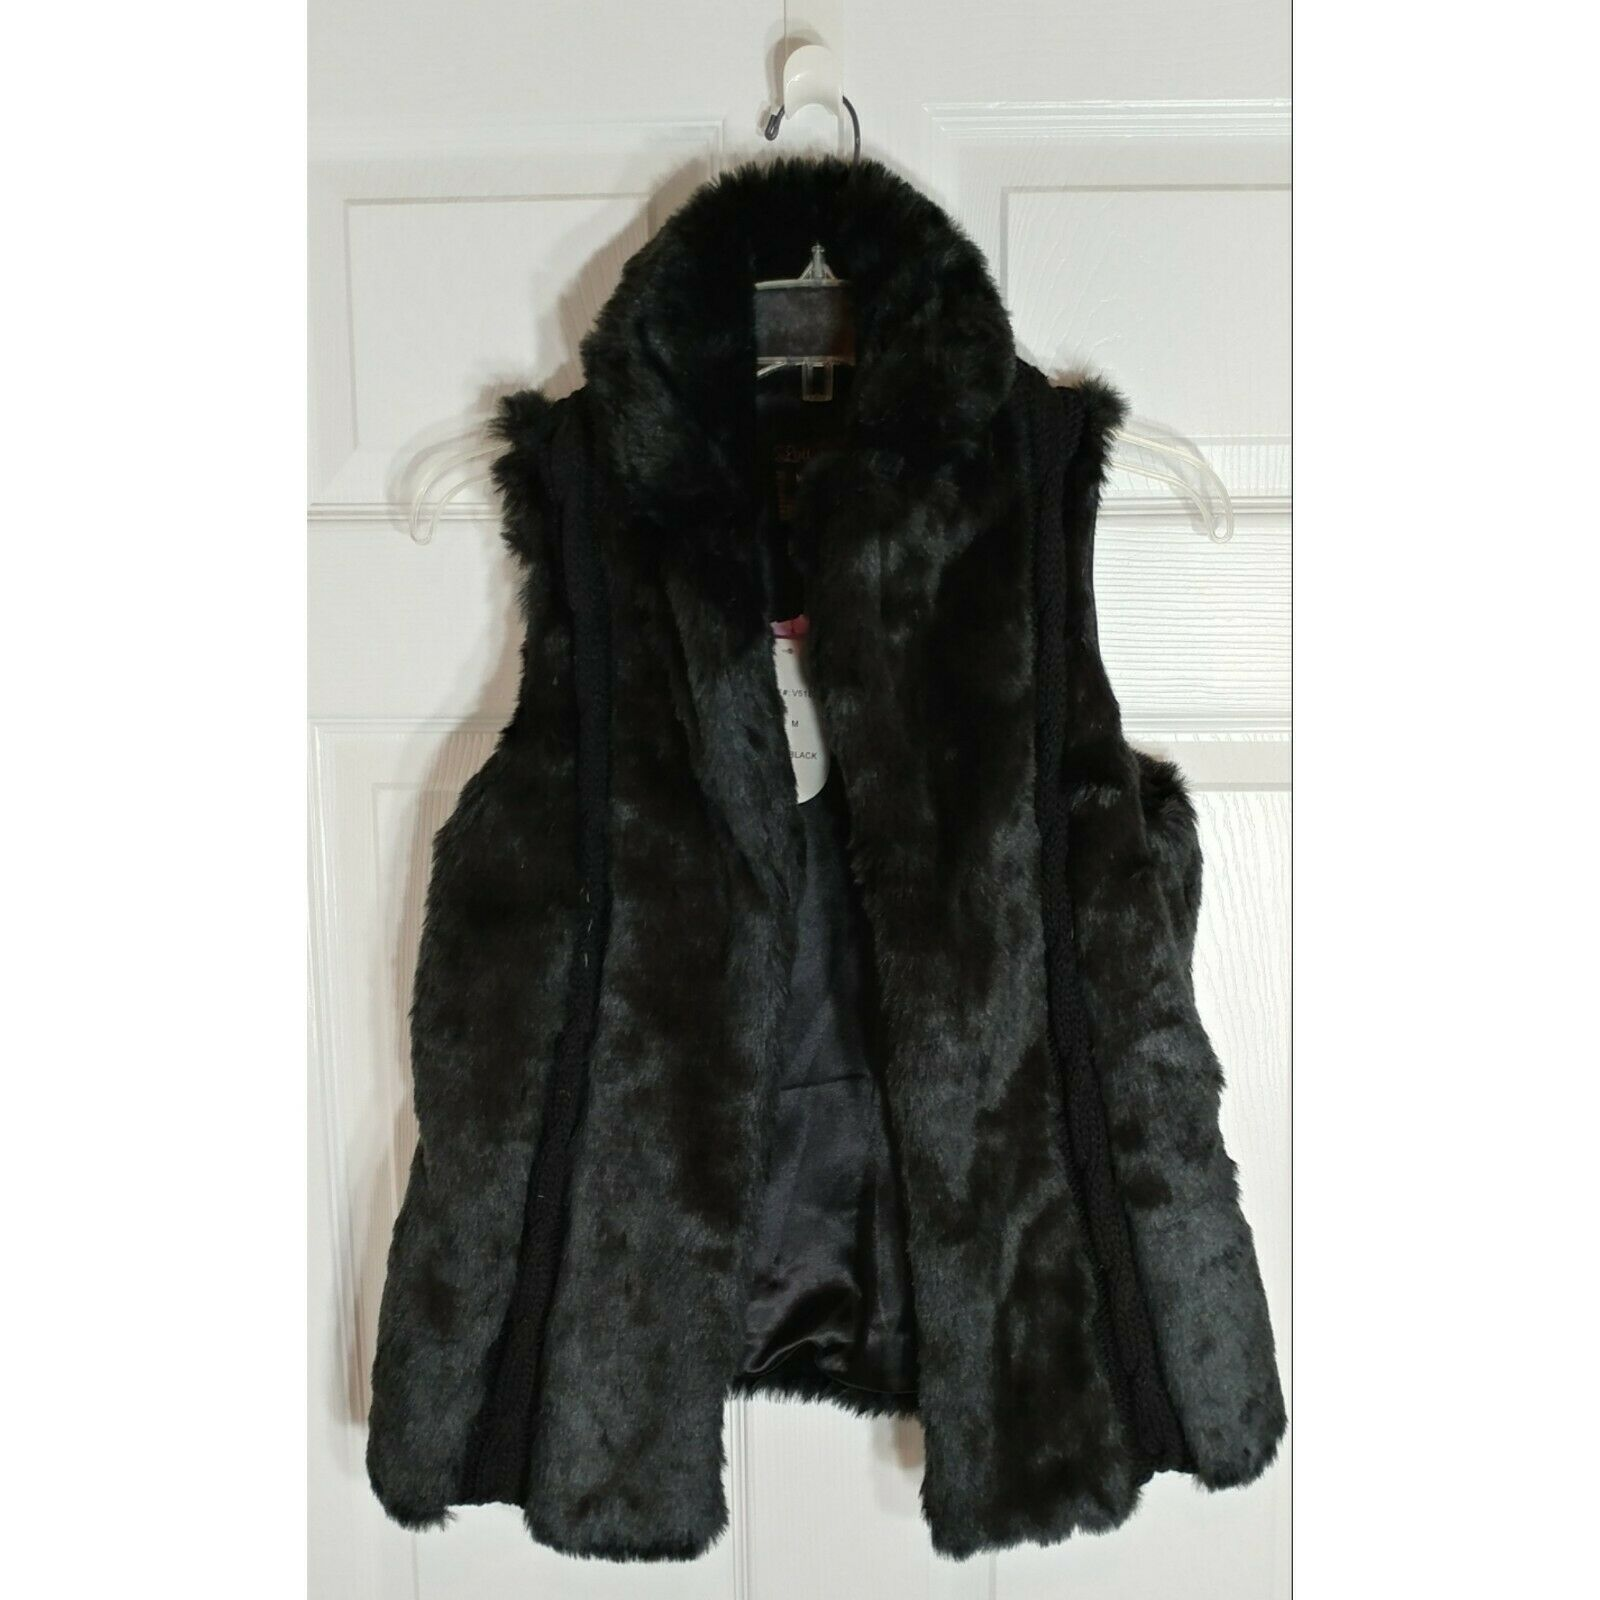 Luii Brand Faux Fur Vest New With Tags Tags Tags (NWT) 6c1462